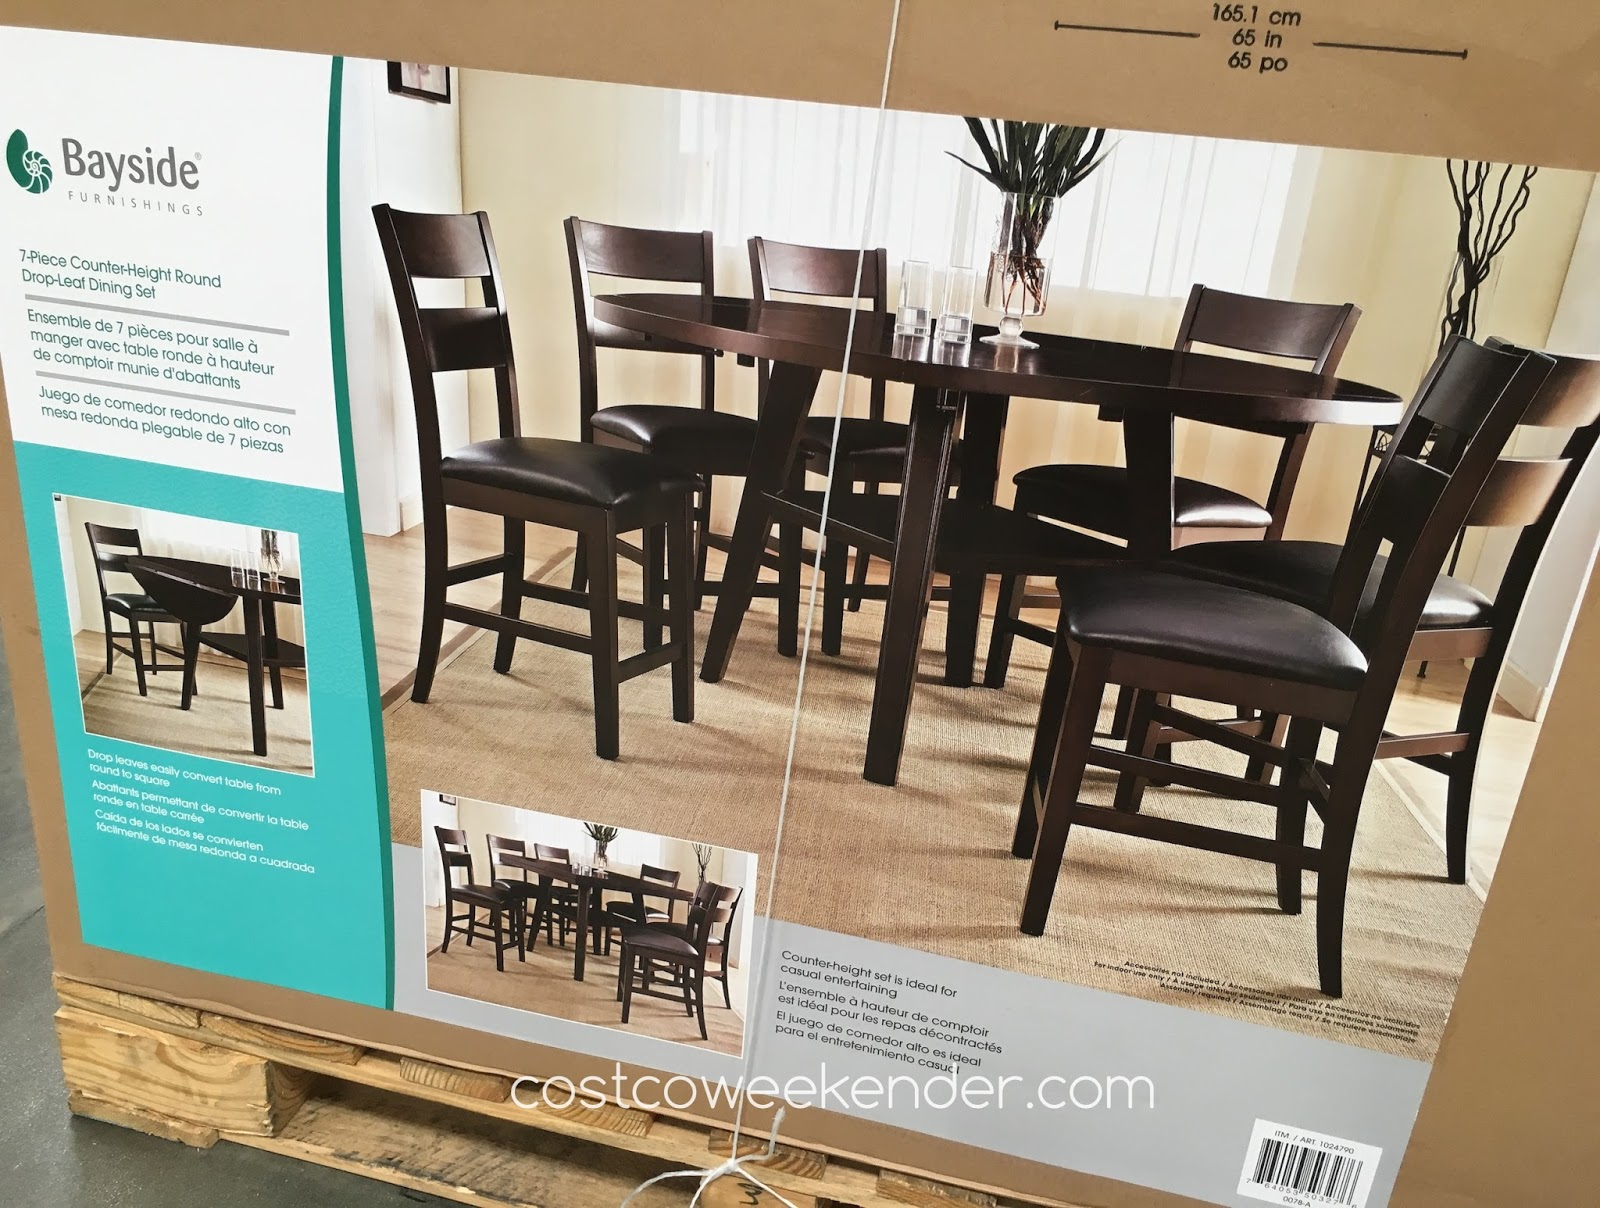 Bayside furnishings 7 piece square to round dining set costco weekender - Costco dining room set ...